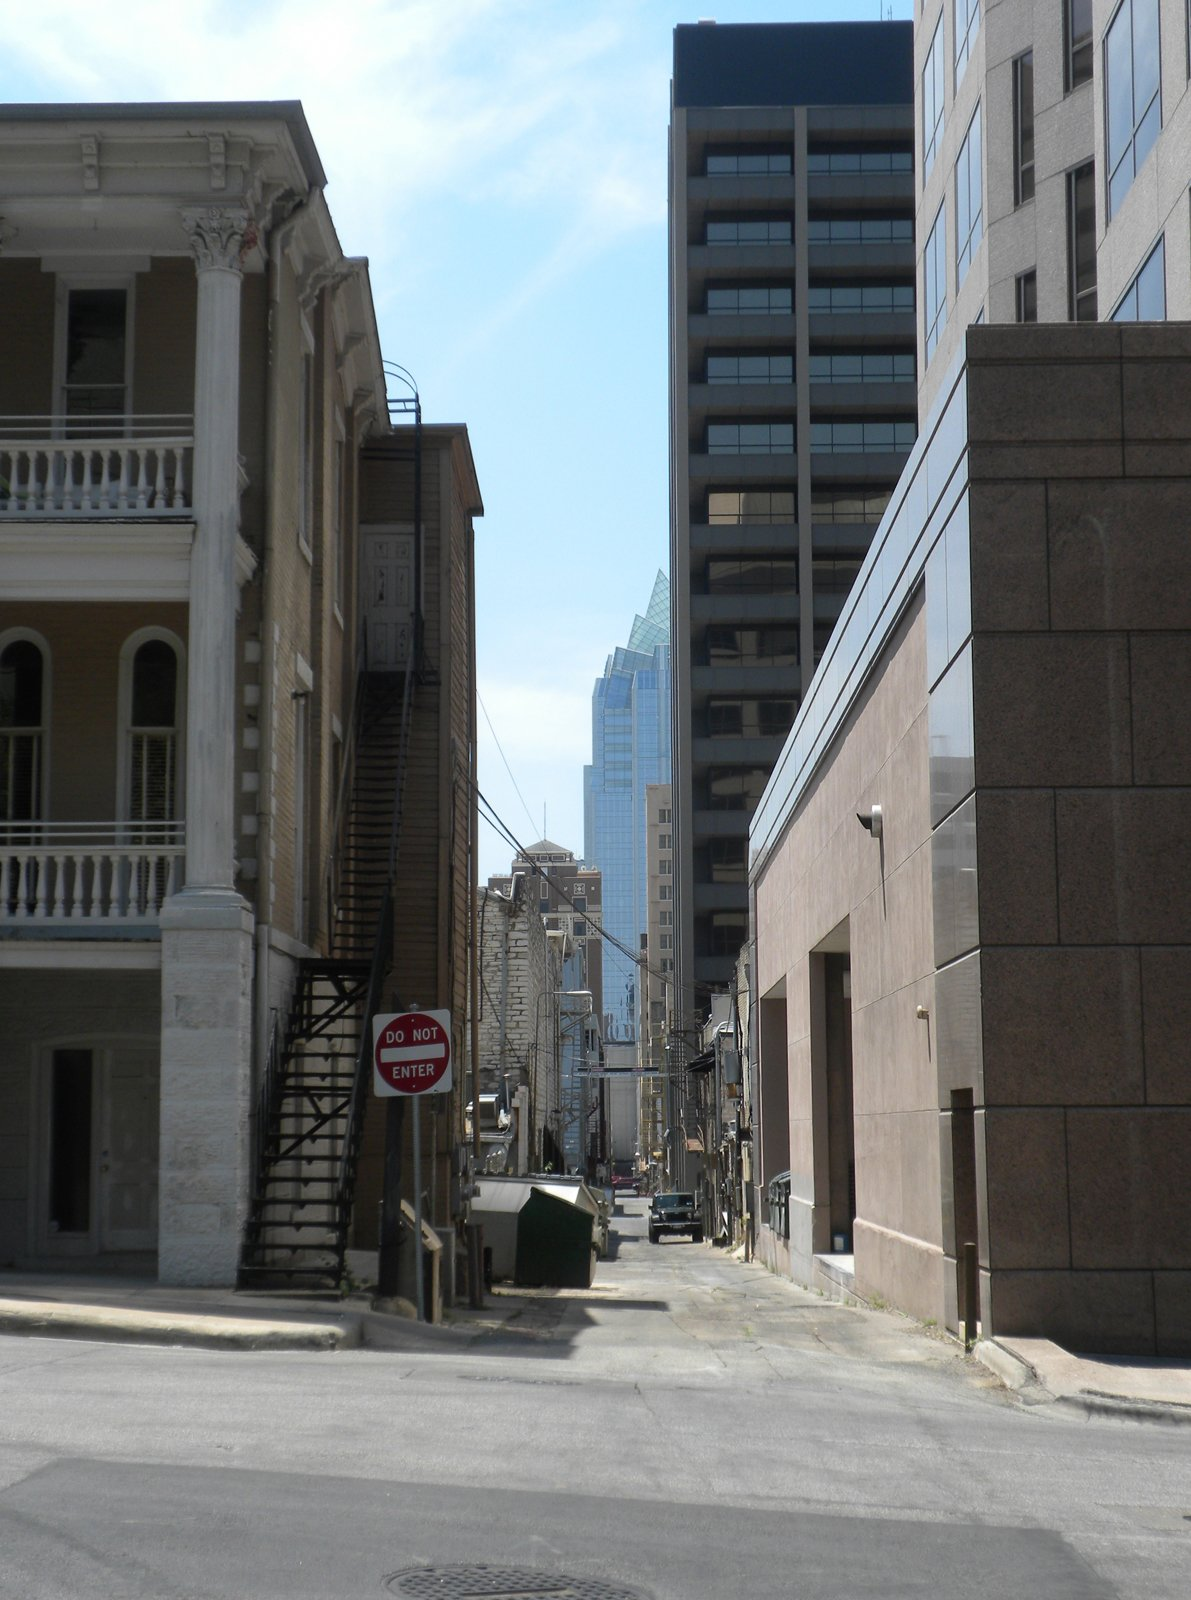 To find some shade, we walked down some of Austin's narrow downtown alleys. In the distance is the Frost Bank Tower.  Three Days in Austin, Texas by Miyoko Ohtake